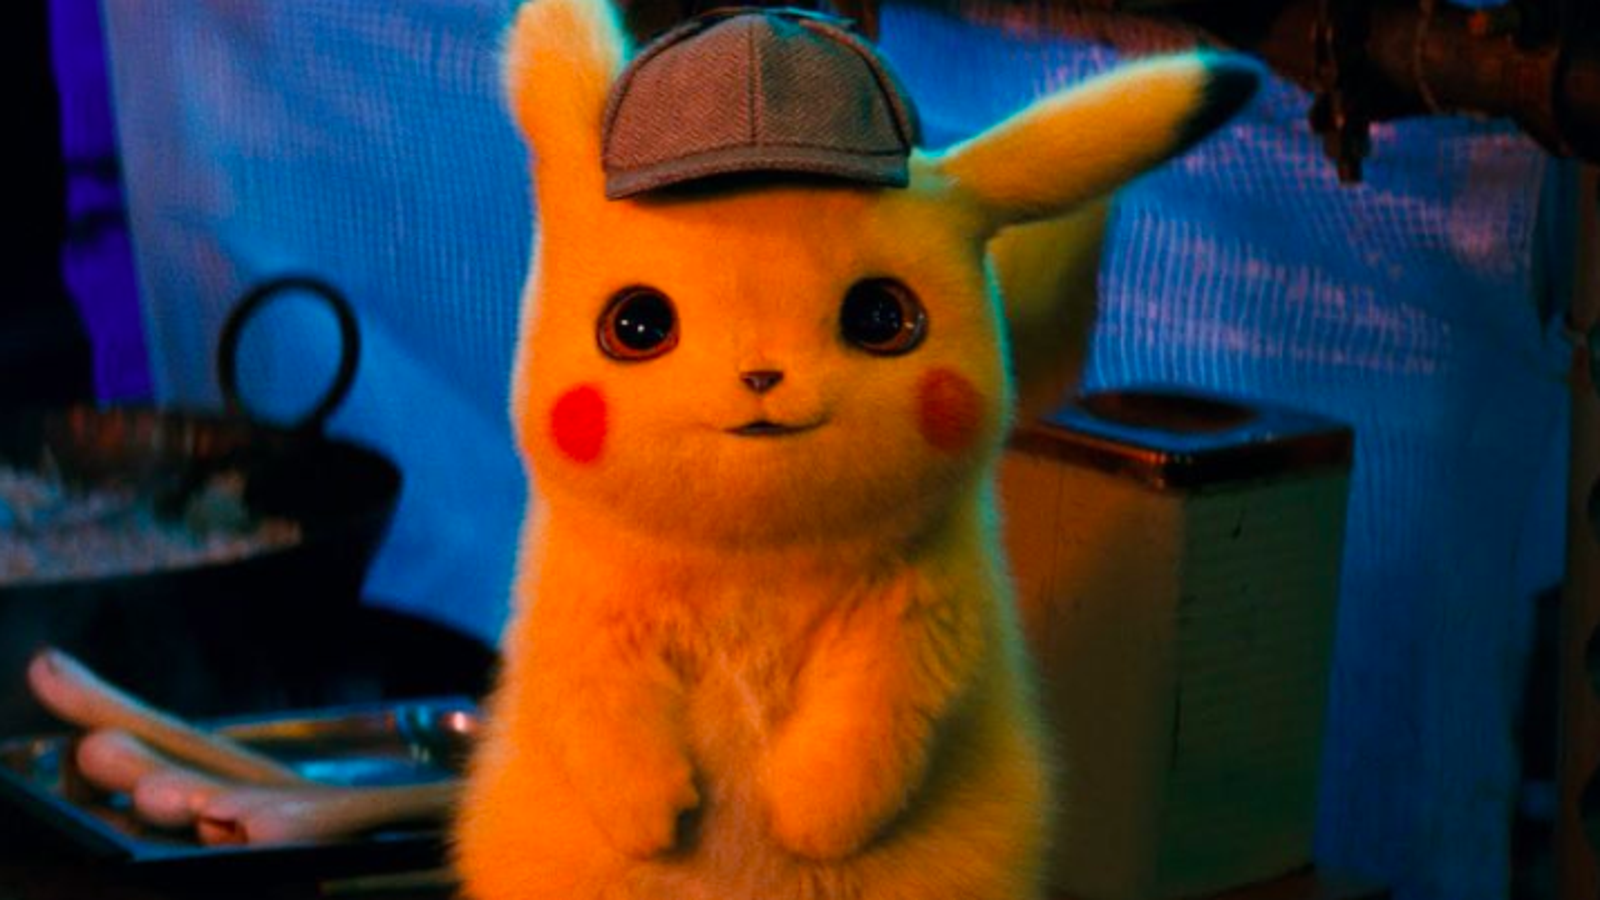 Ryan Reynolds Is Detective Pikachu Because 2019 Will Apparently Be